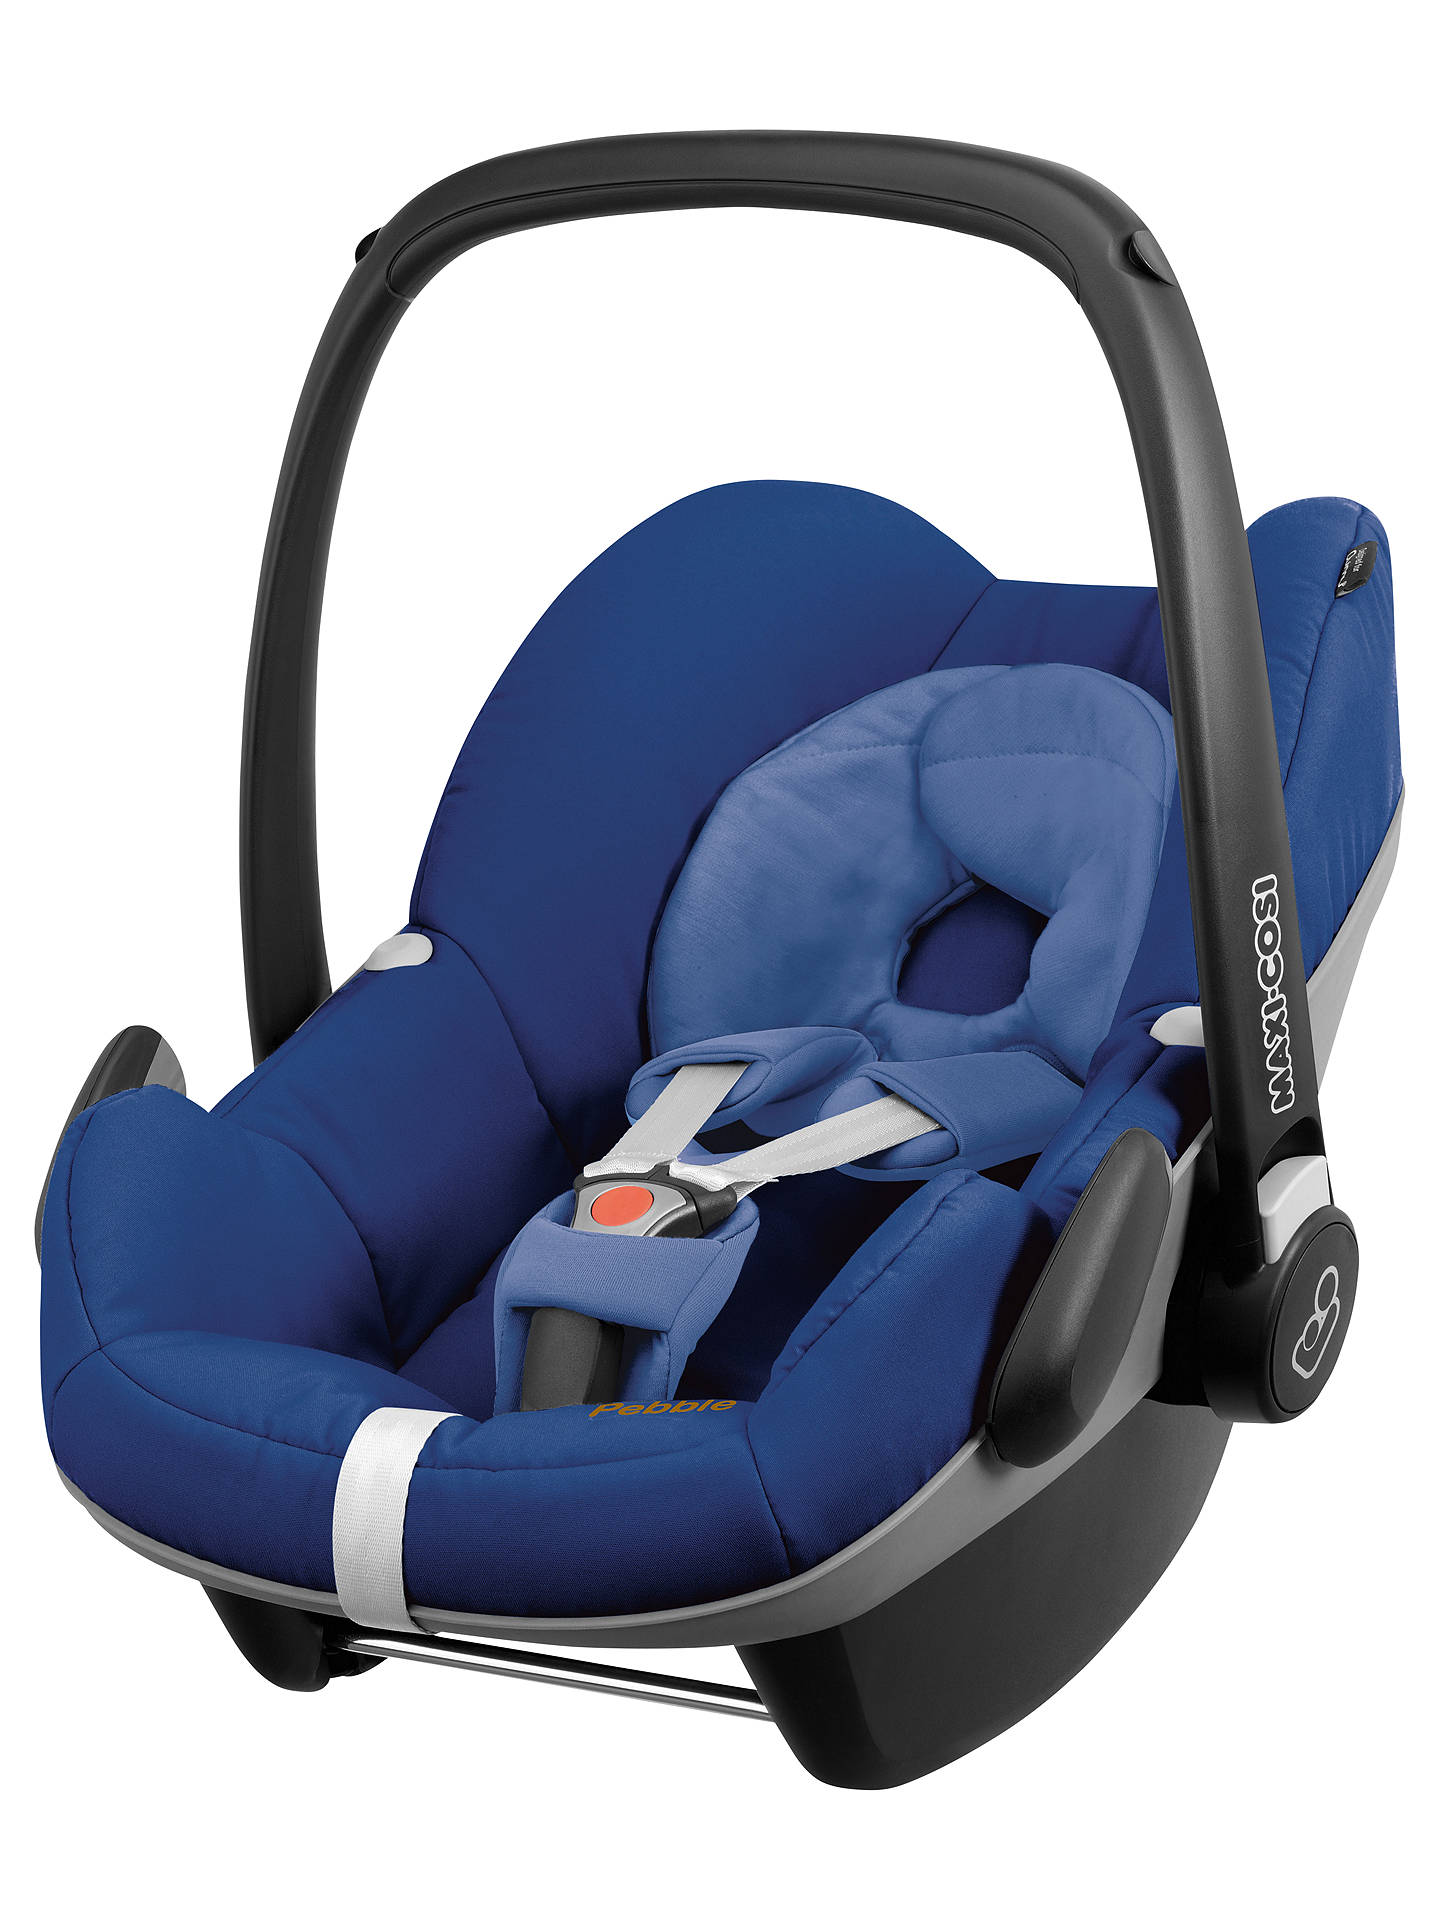 maxi cosi pebble group 0 baby car seat blue base at john lewis partners. Black Bedroom Furniture Sets. Home Design Ideas